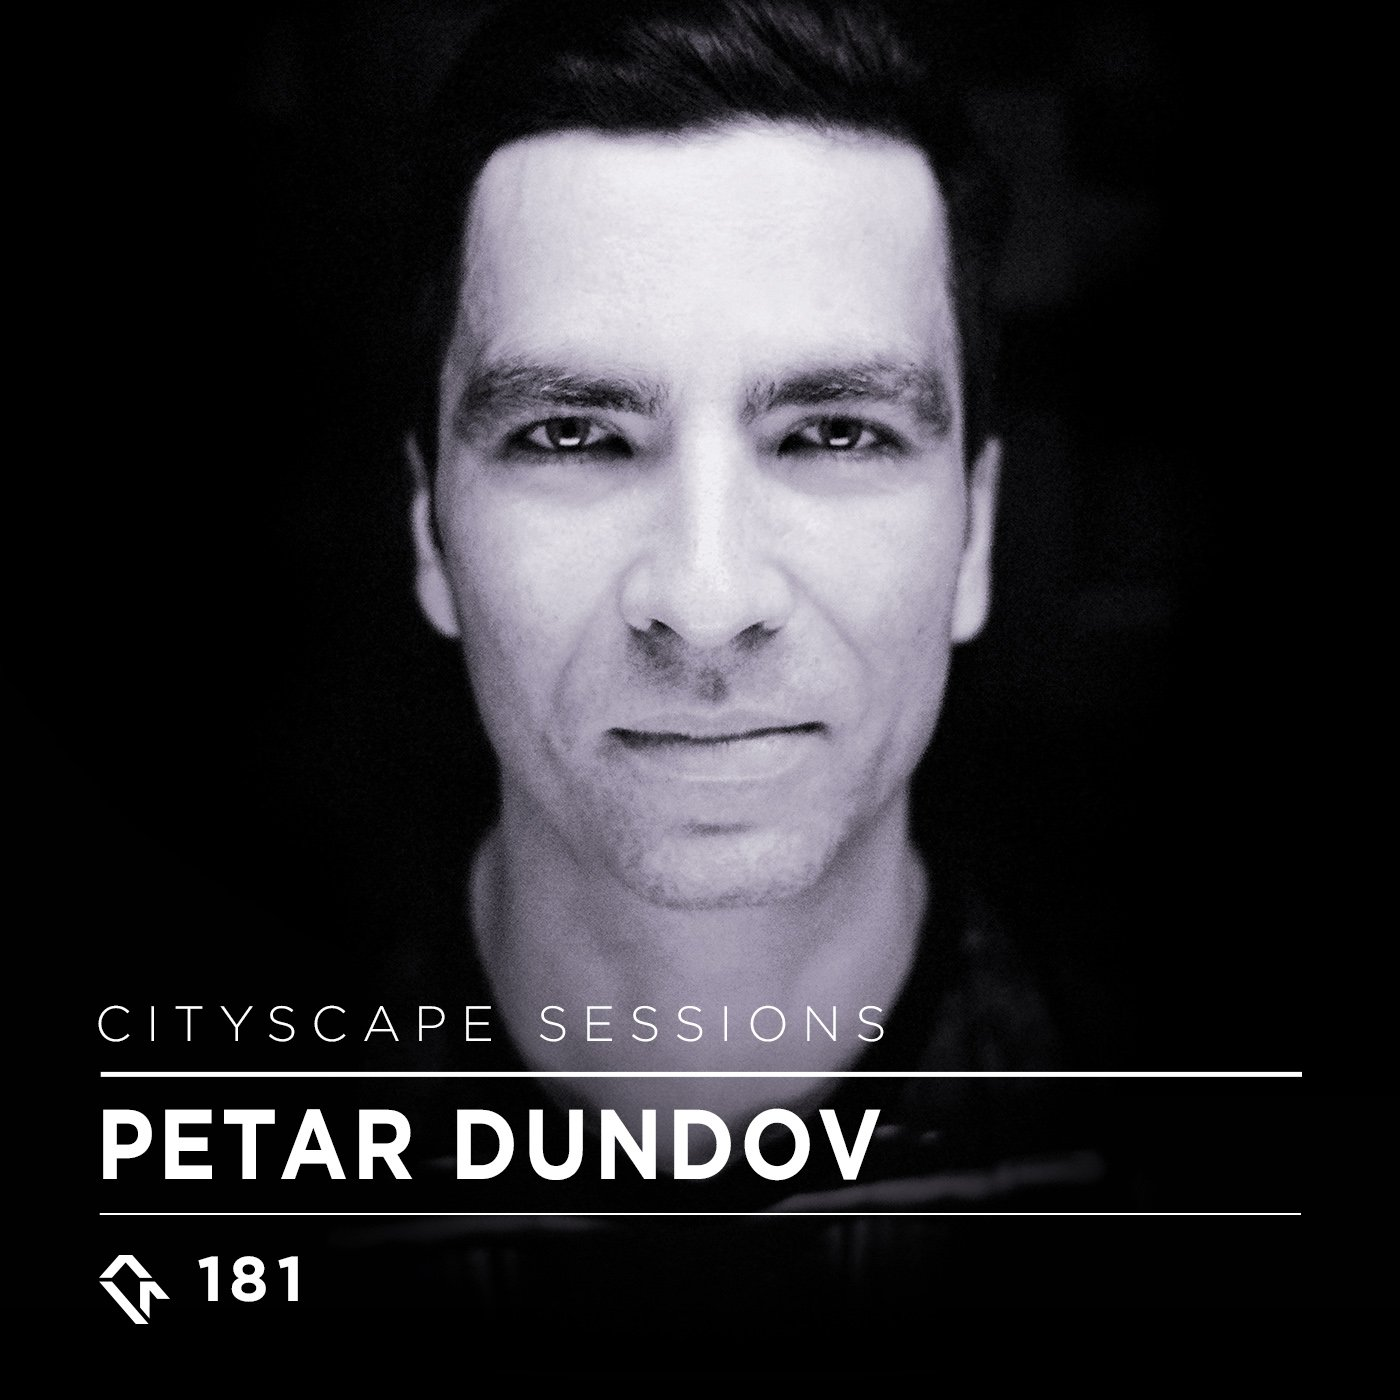 Petar Dundov - Cityscape Sessions 181 on TM Radio - 04-Oct-2017